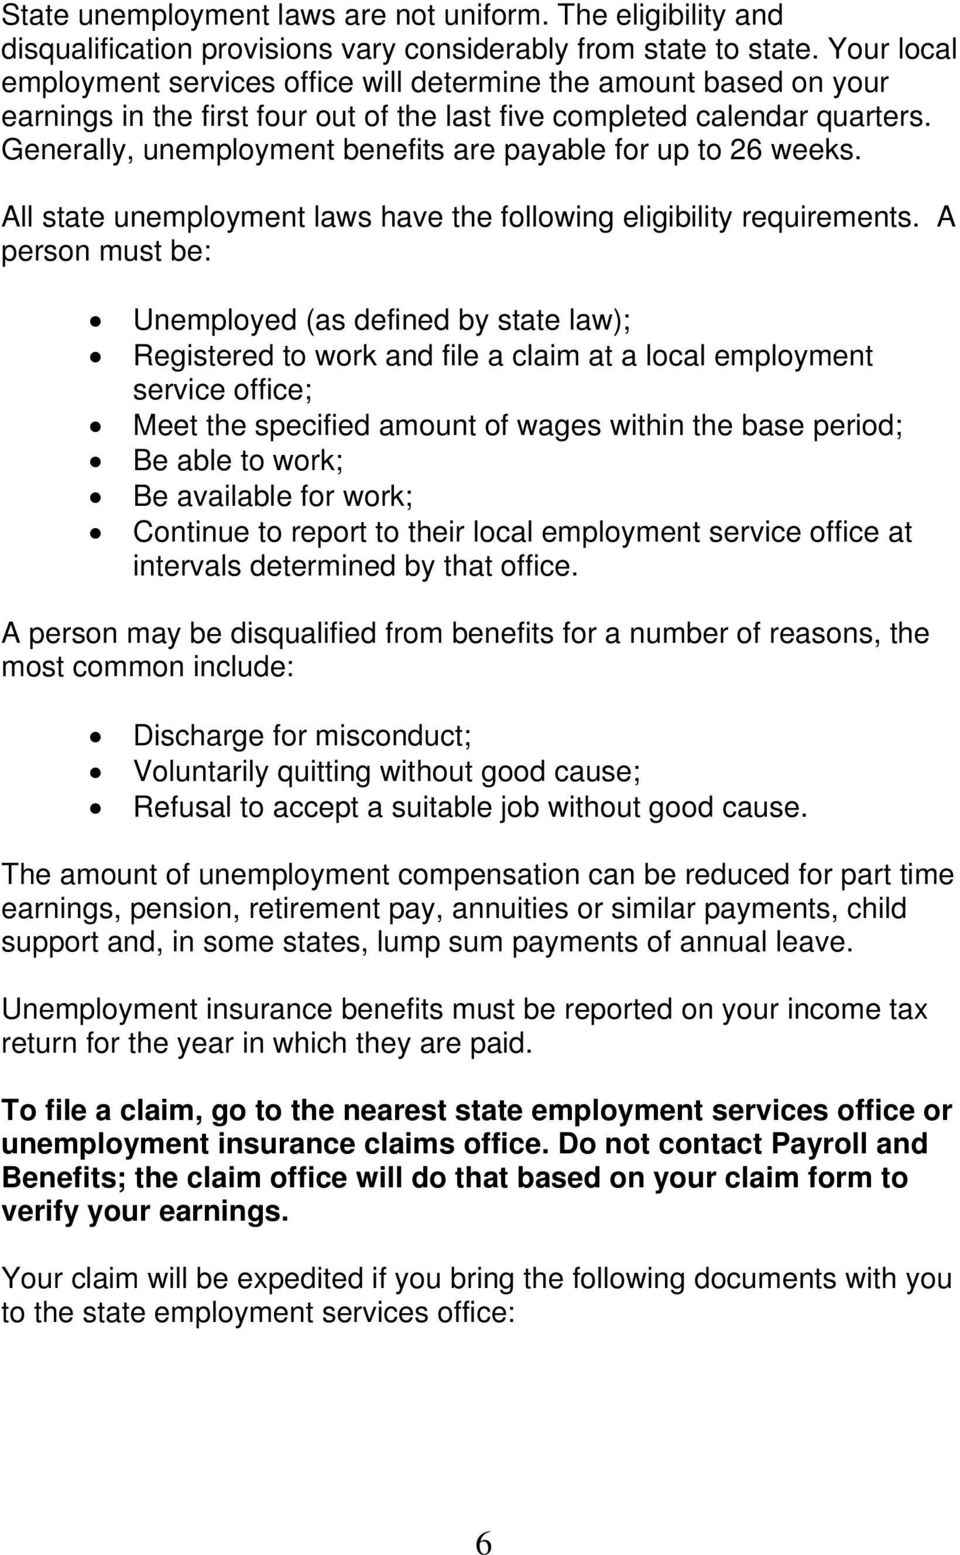 Generally, unemployment benefits are payable for up to 26 weeks. All state unemployment laws have the following eligibility requirements.